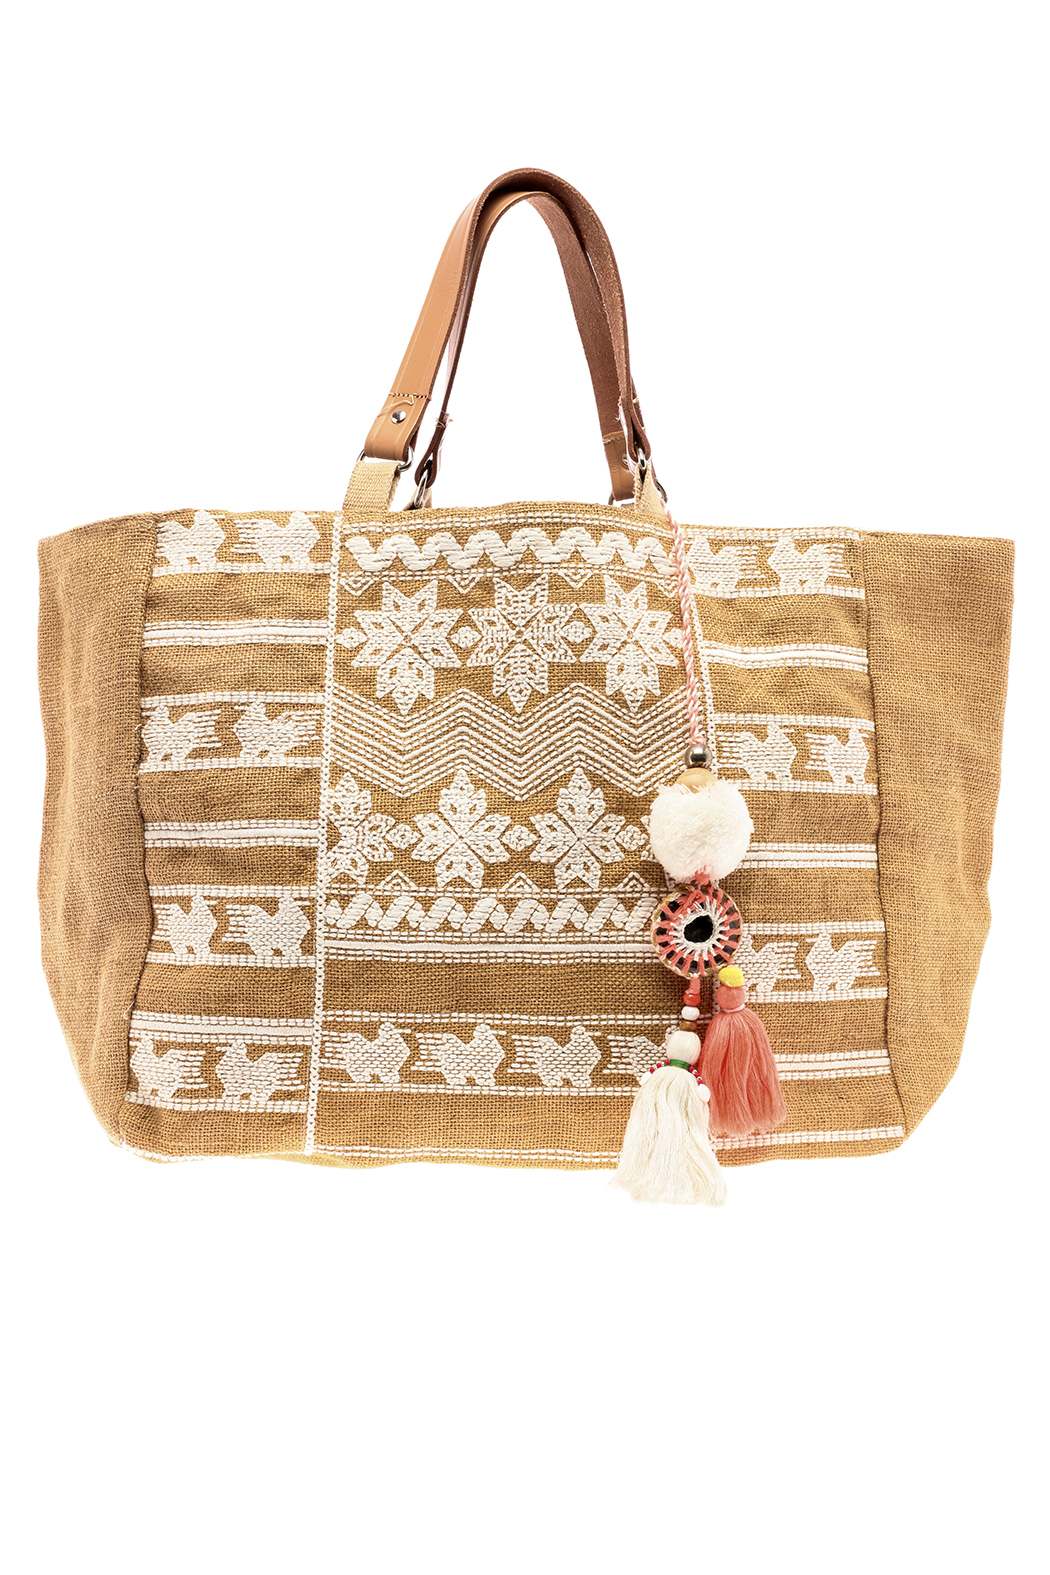 Star Mela Jute Embroidered Tote From Idaho By Madeline And